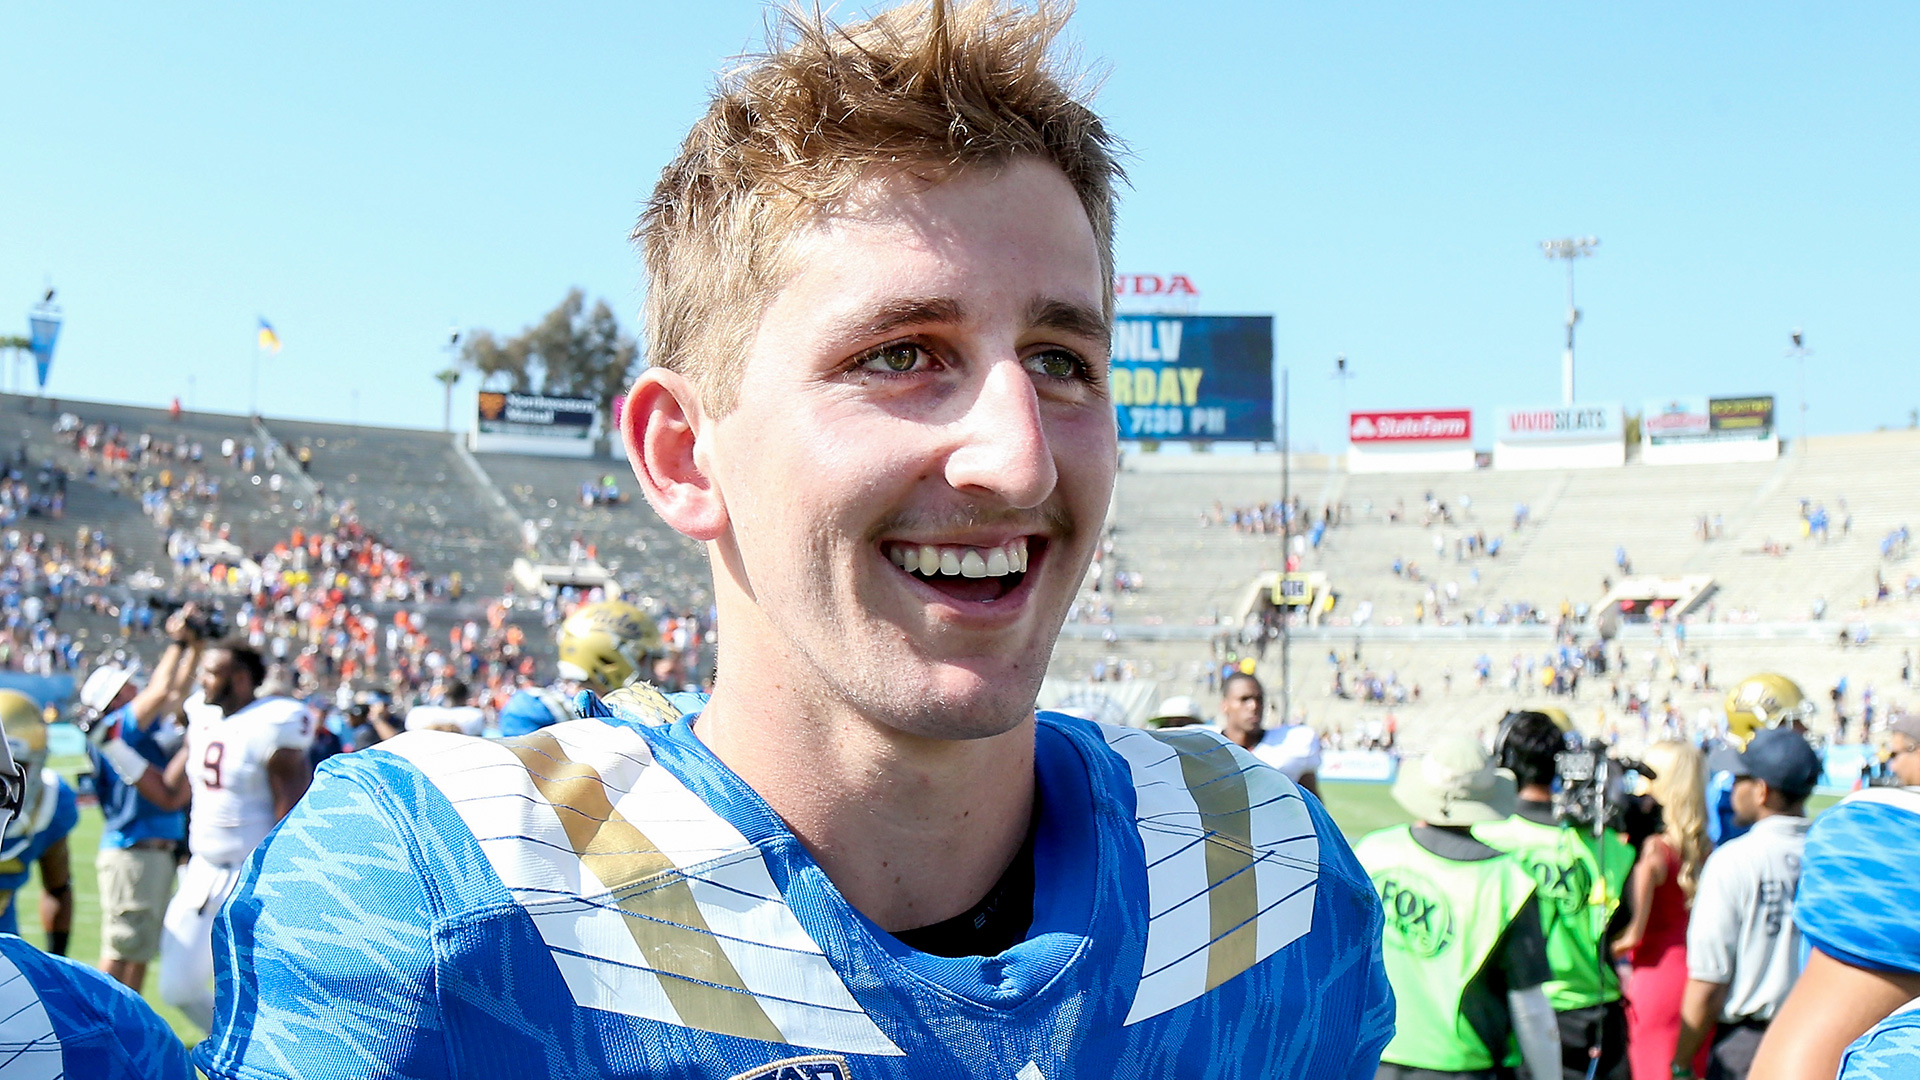 UCLA QB Josh Rosen knows there is life after football